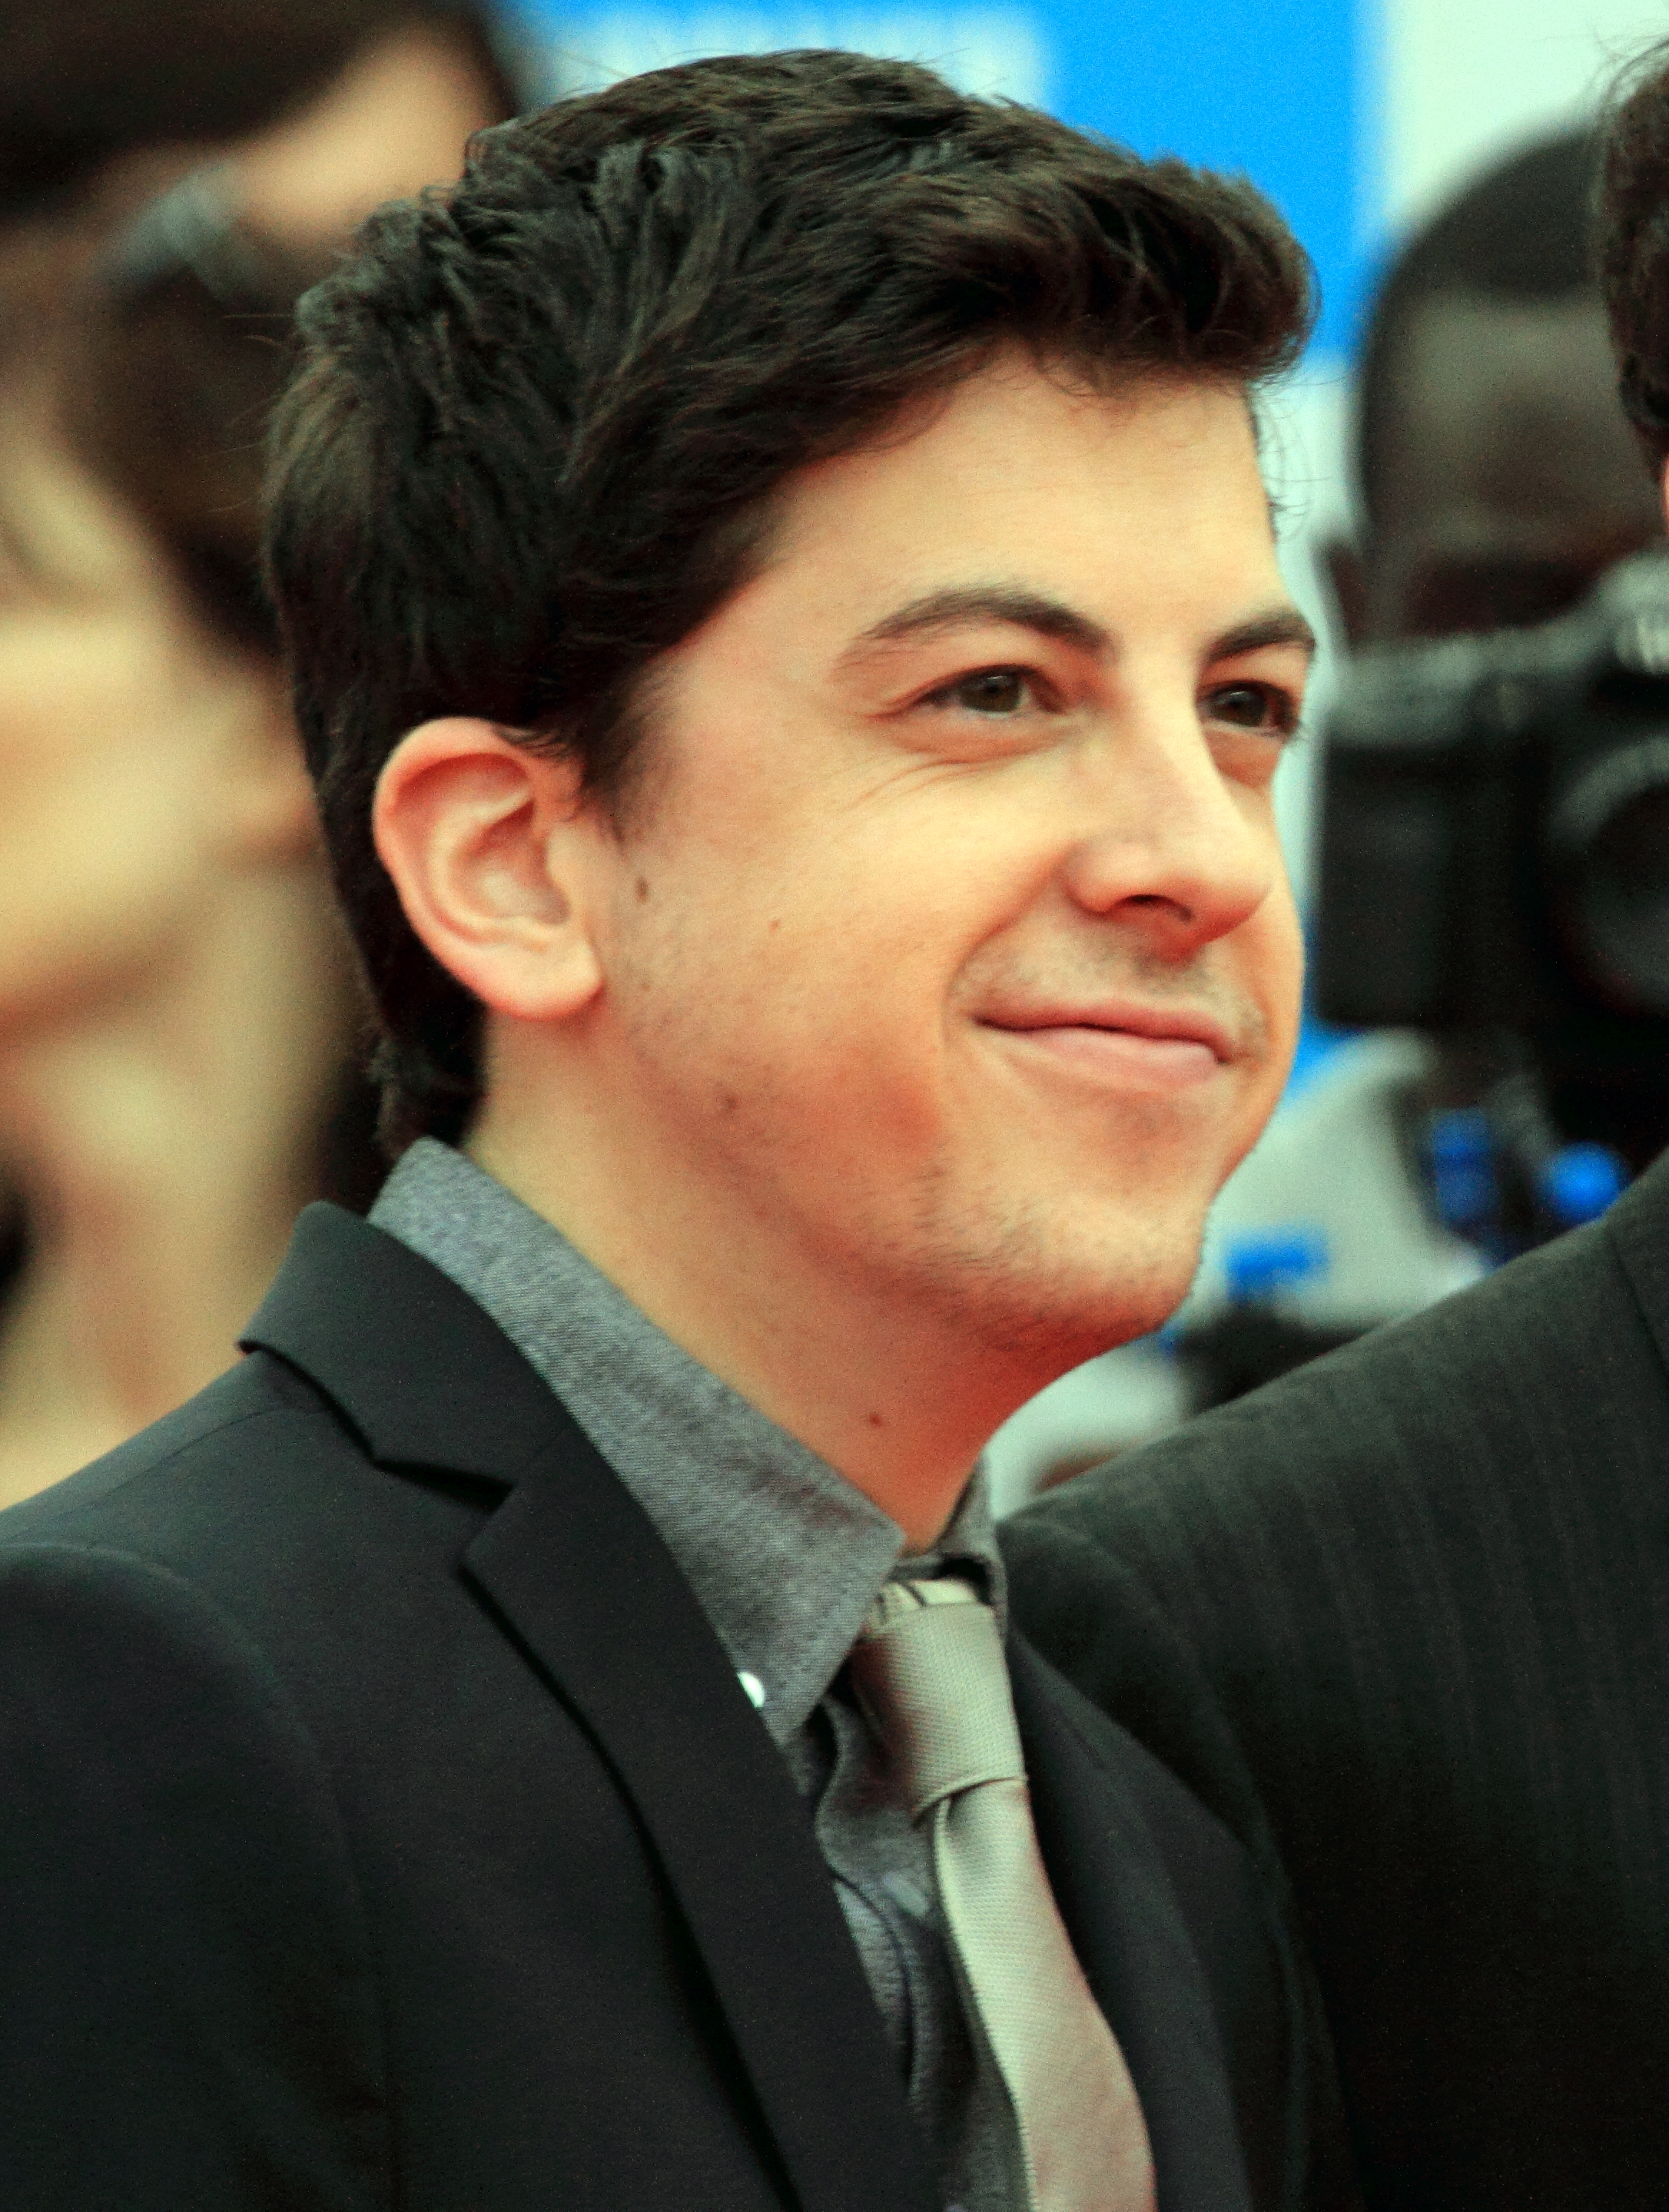 Christopher Mintz-Plasse - Wikipedia, the free encyclopediaboy ptch